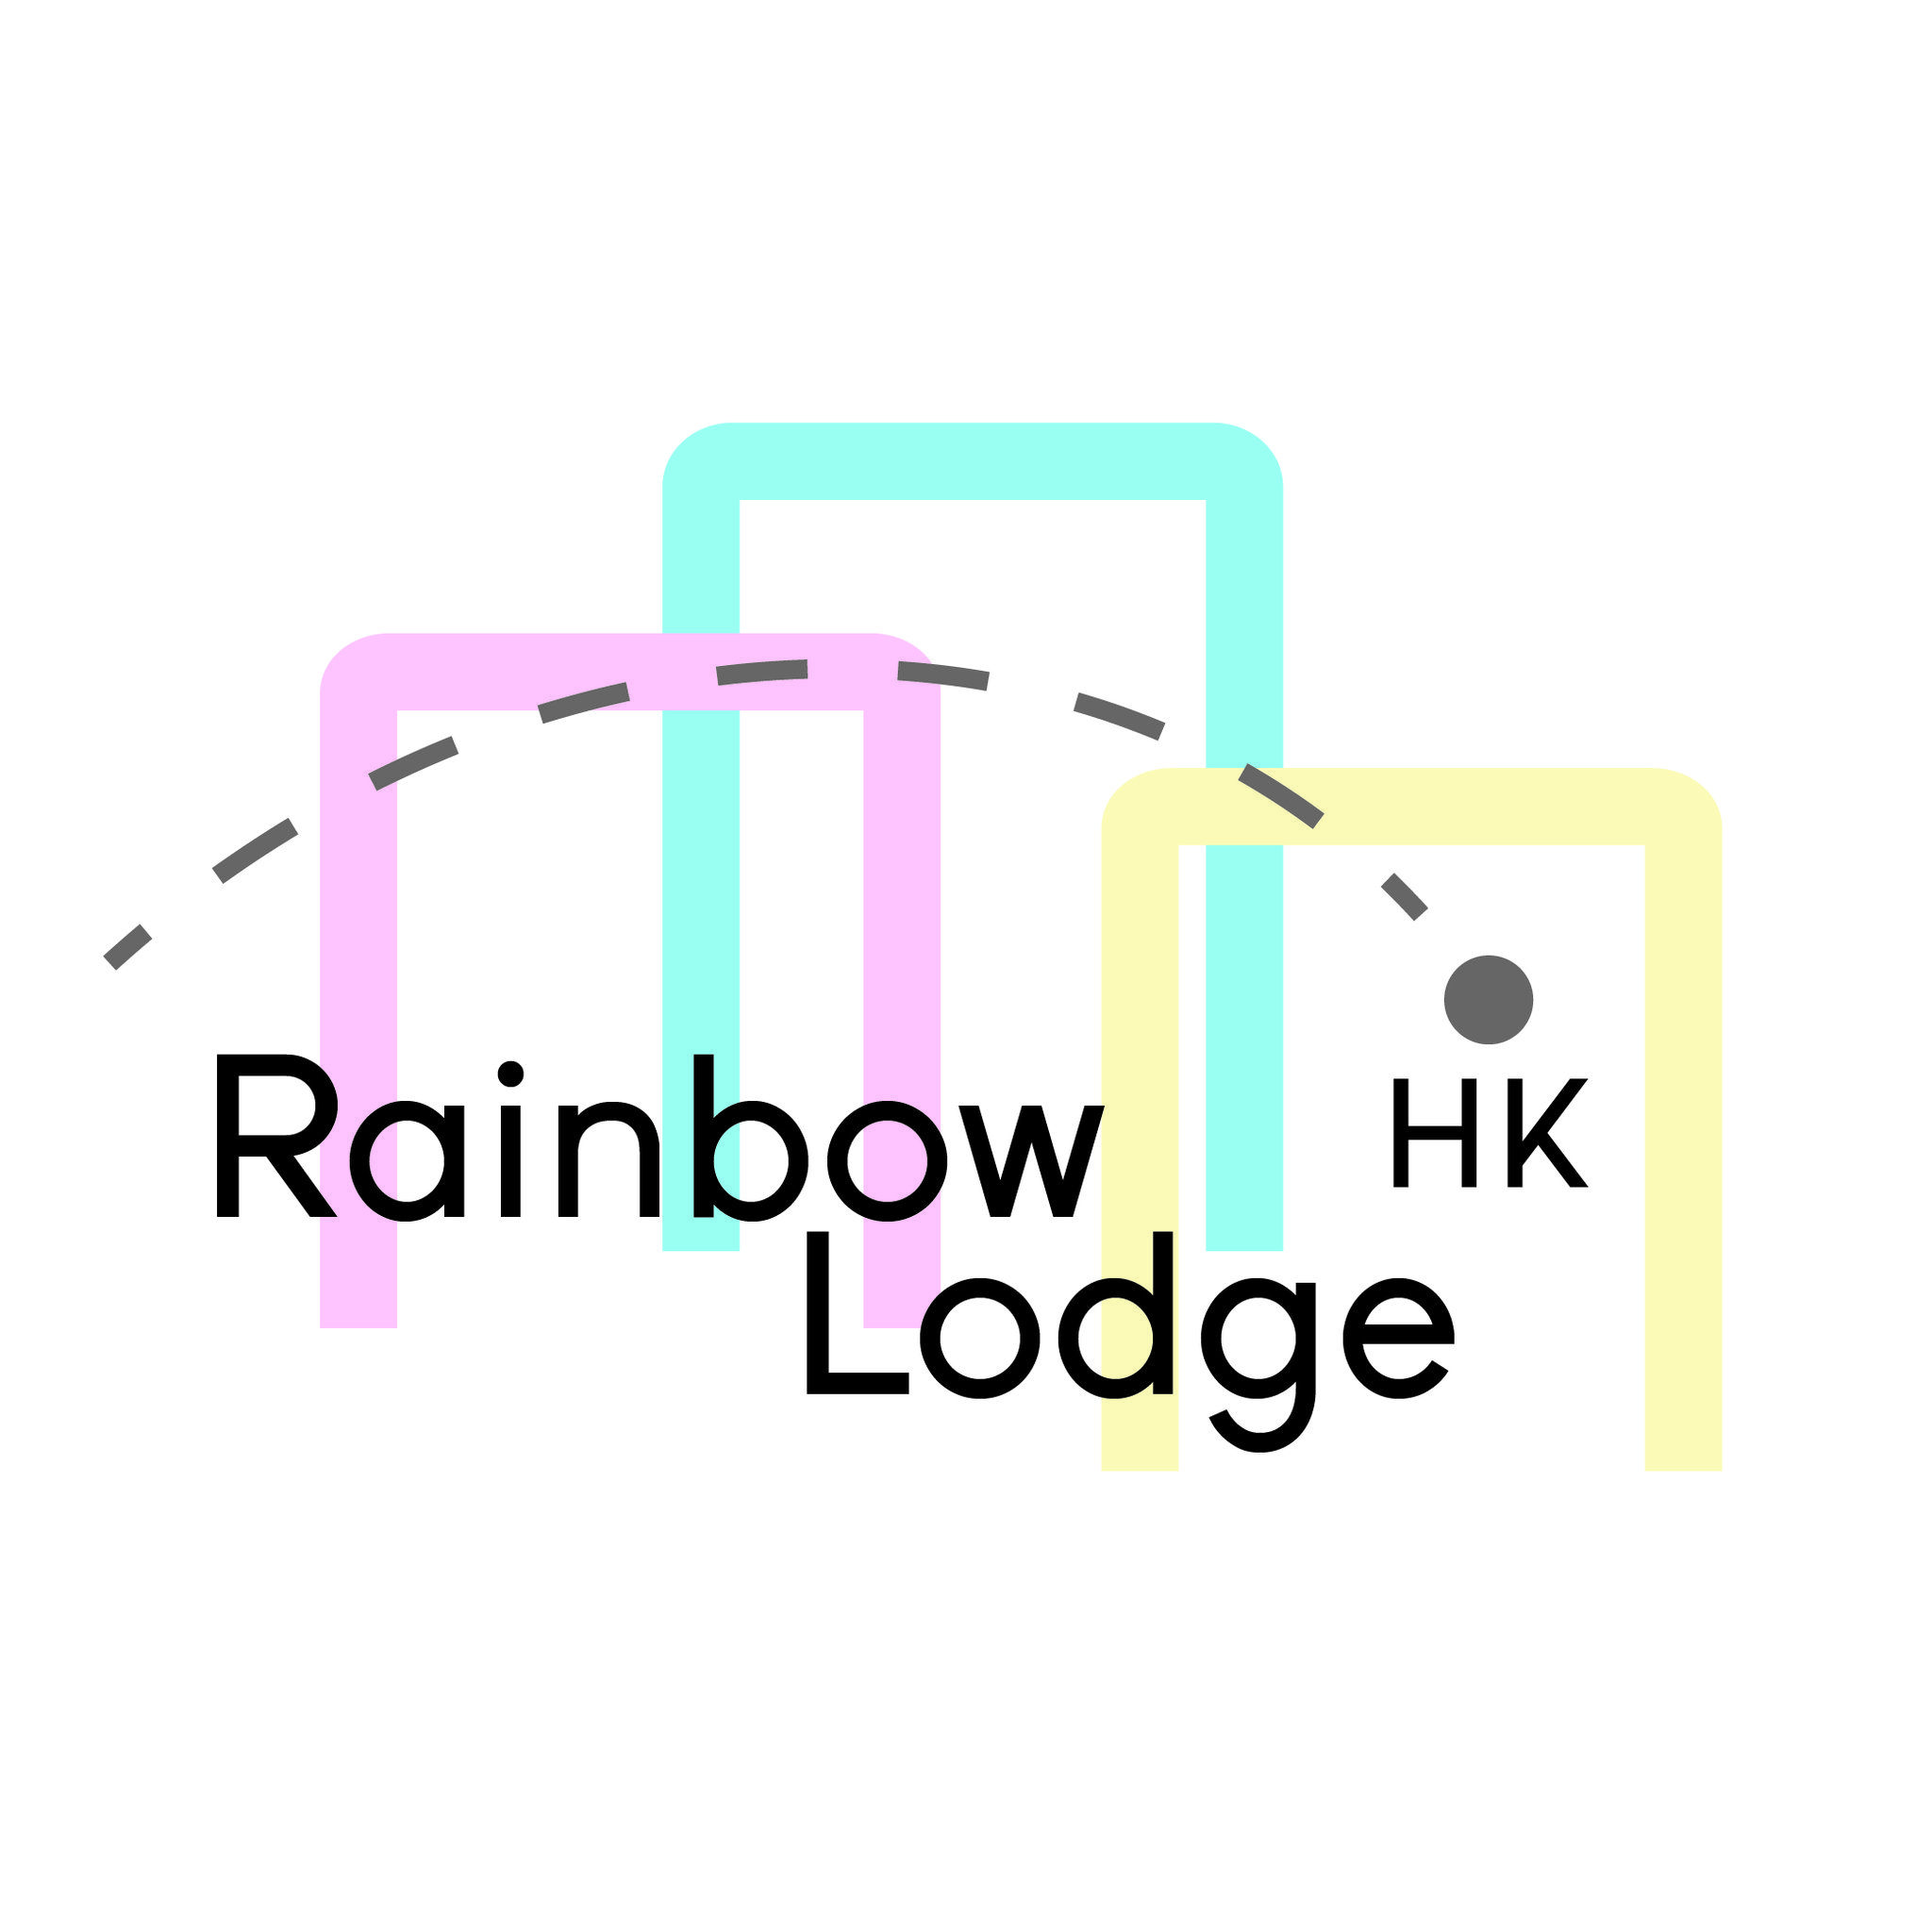 Rainbow Lodge HK